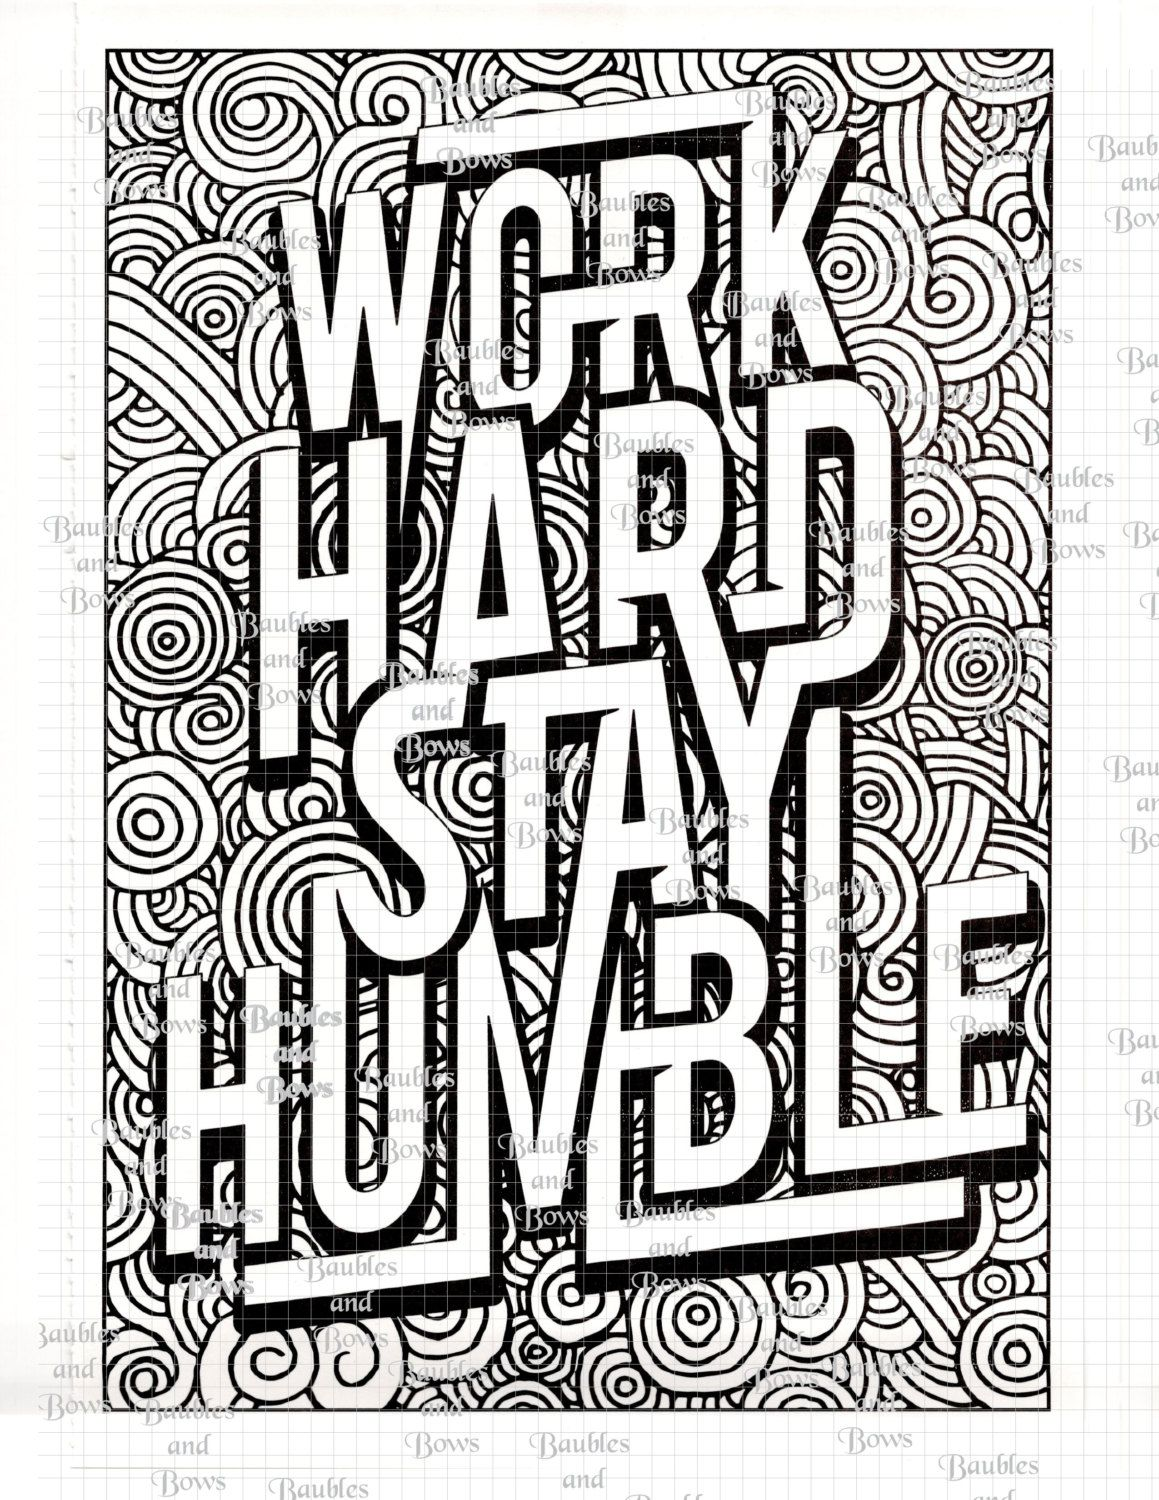 Coloring pages with quotes - Work Hard Printable Adult Mandala Coloring Page By Sewlacee